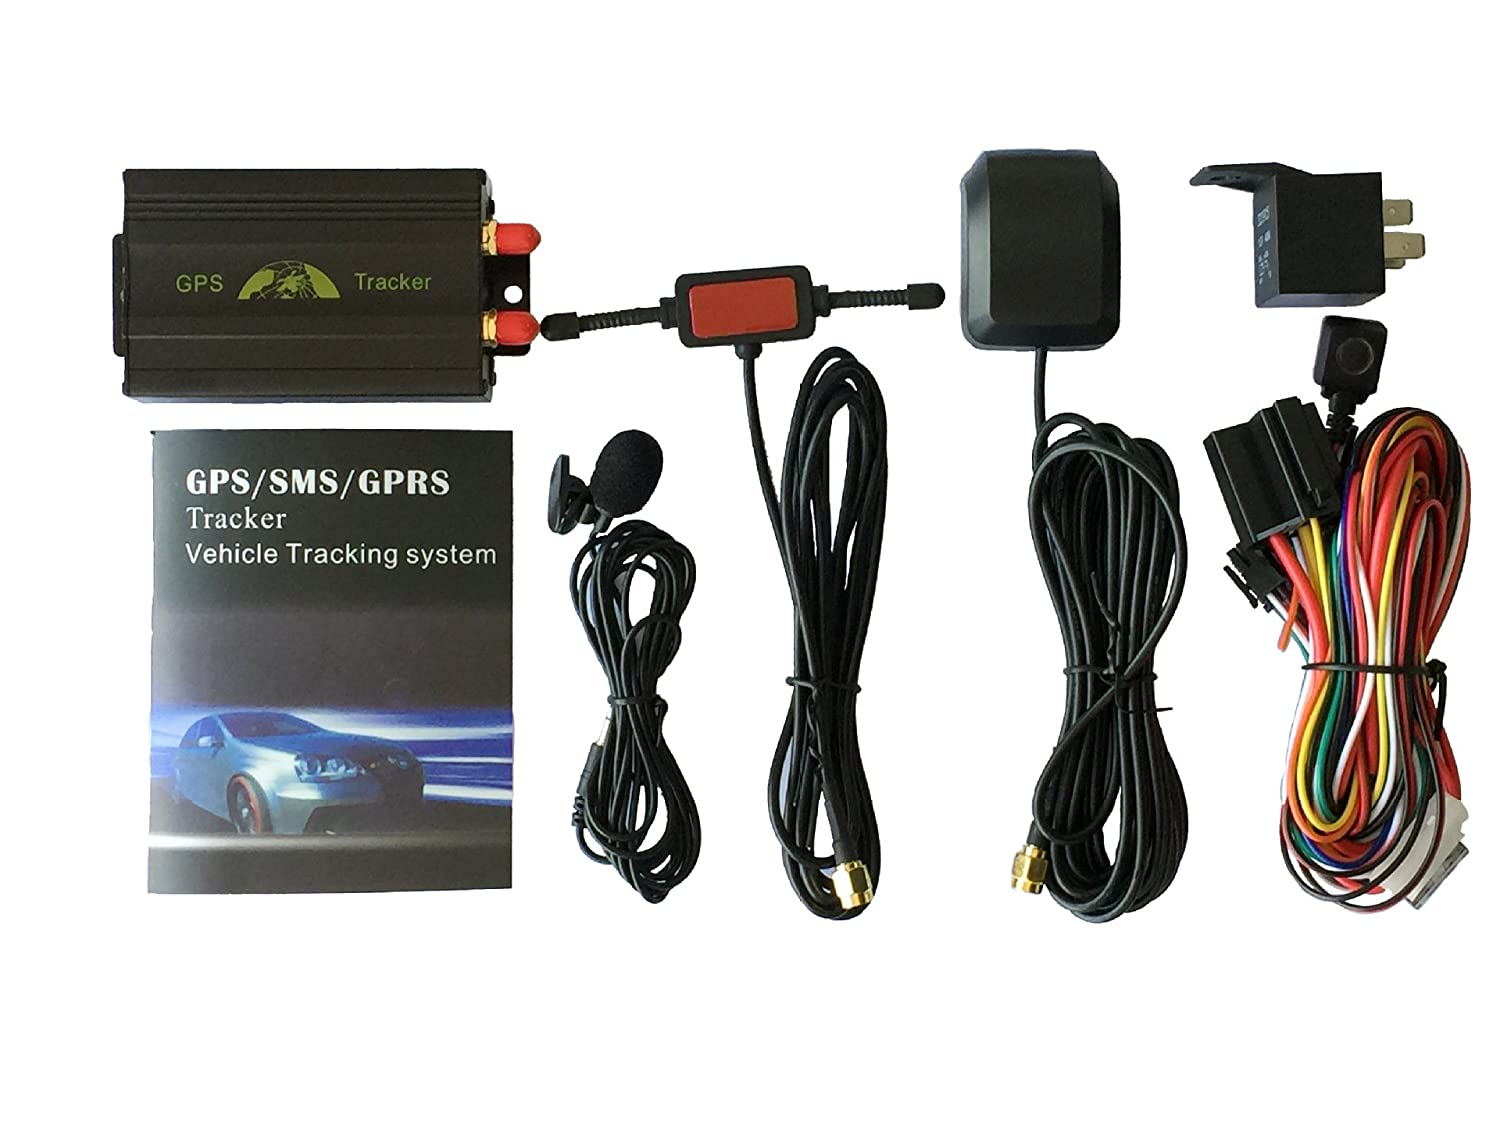 Gps Car Tracker With Gprs And Vehicle Theft Protection Wiring Loom Tape Halfords Electronics